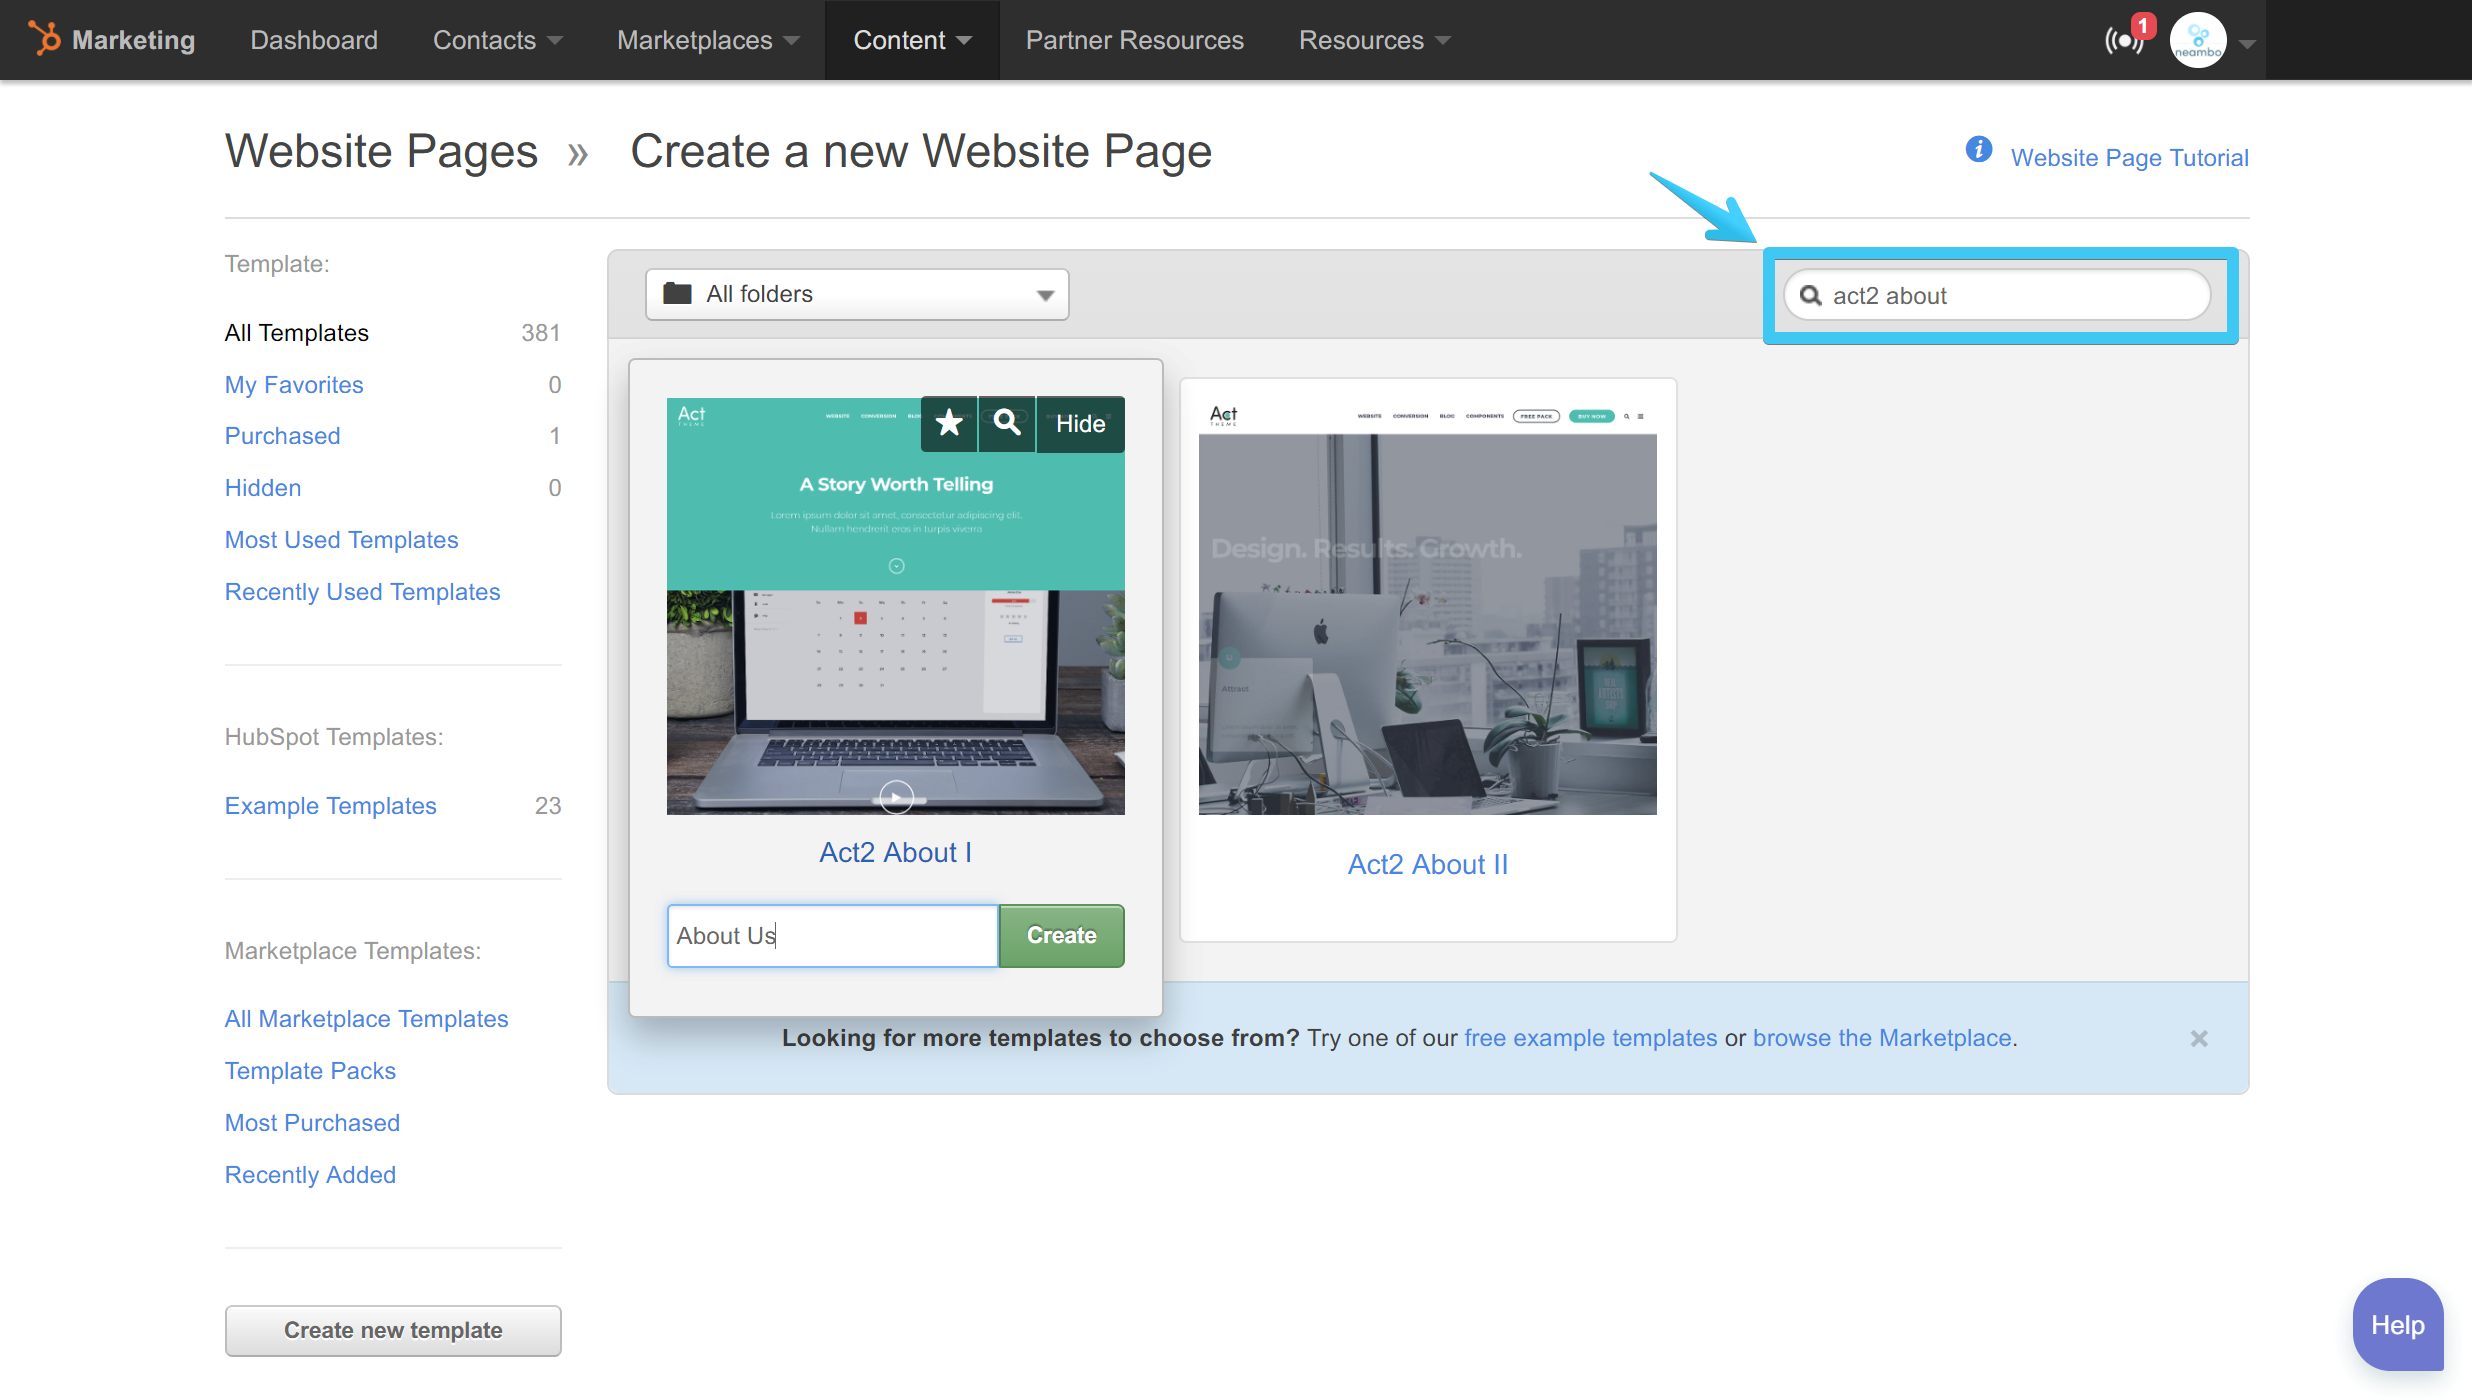 how to create a file upload page for a website